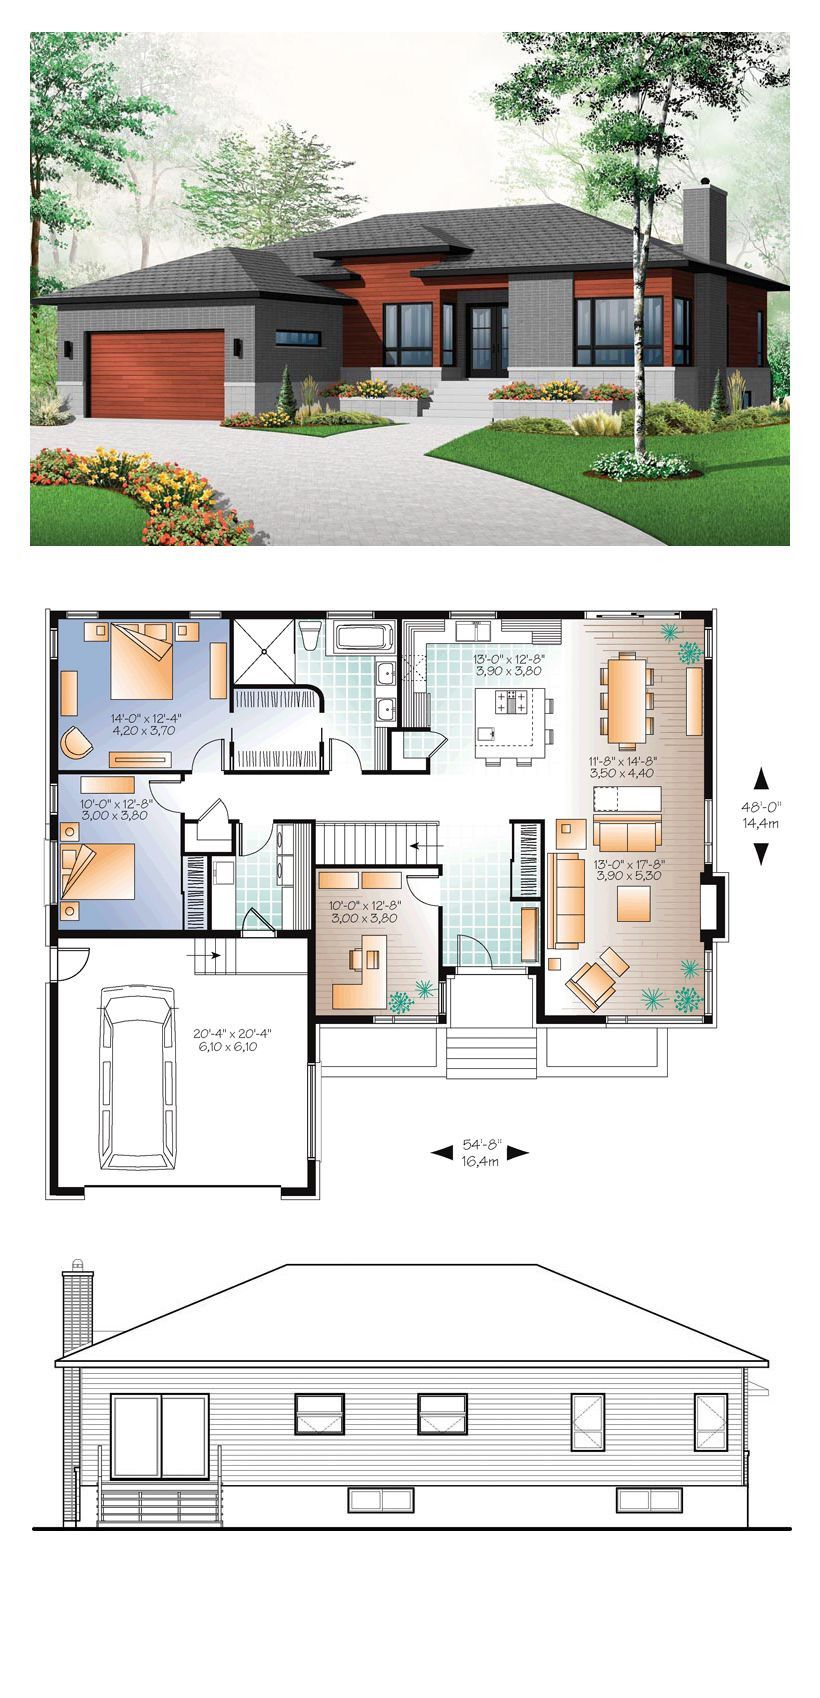 Modern Style House Plan With 3 Bed 1 Bath 2 Car In 2020 Modern Style House Plans House Blueprints Family House Plans